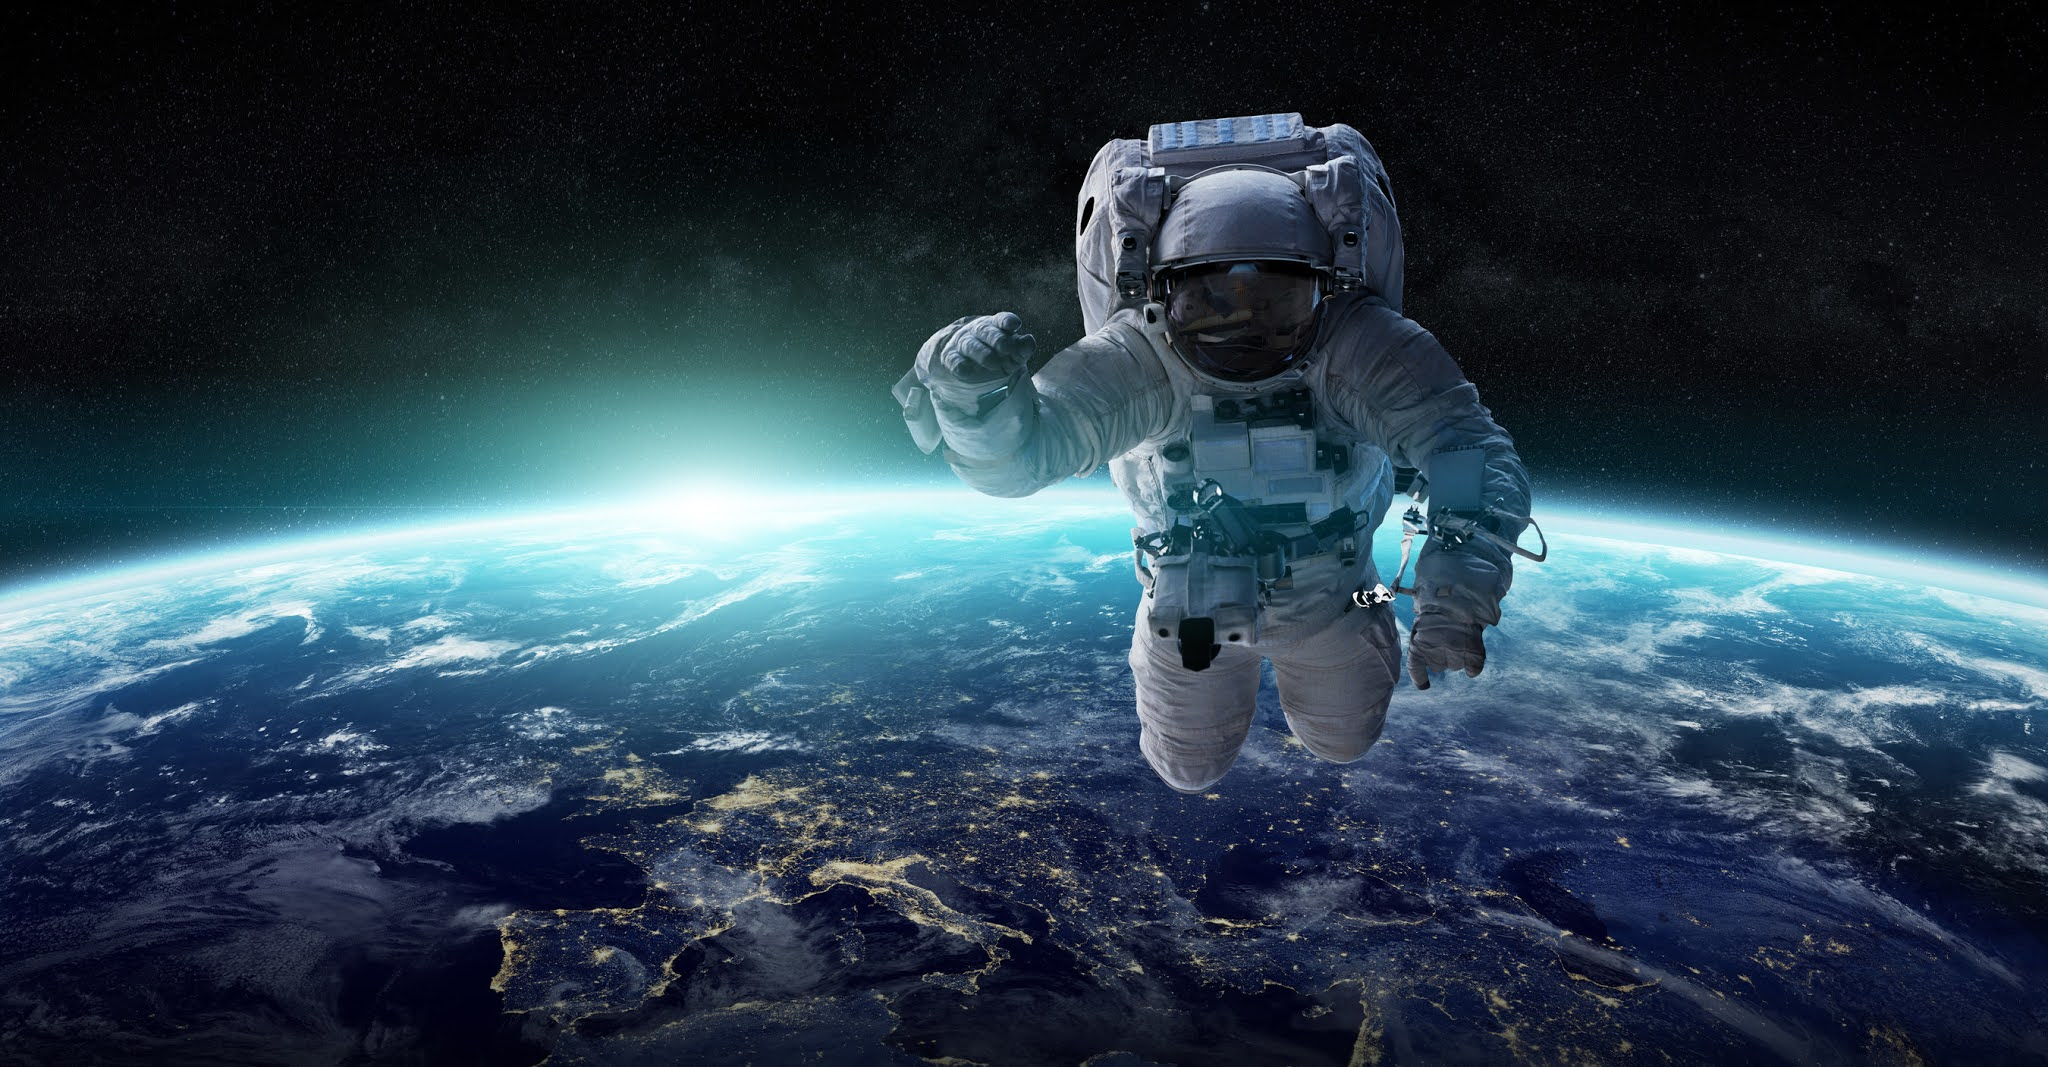 Win a Space Education Bundle from PCG, the Aldrin Family Foundation, and NCBCE: Enter by April 15